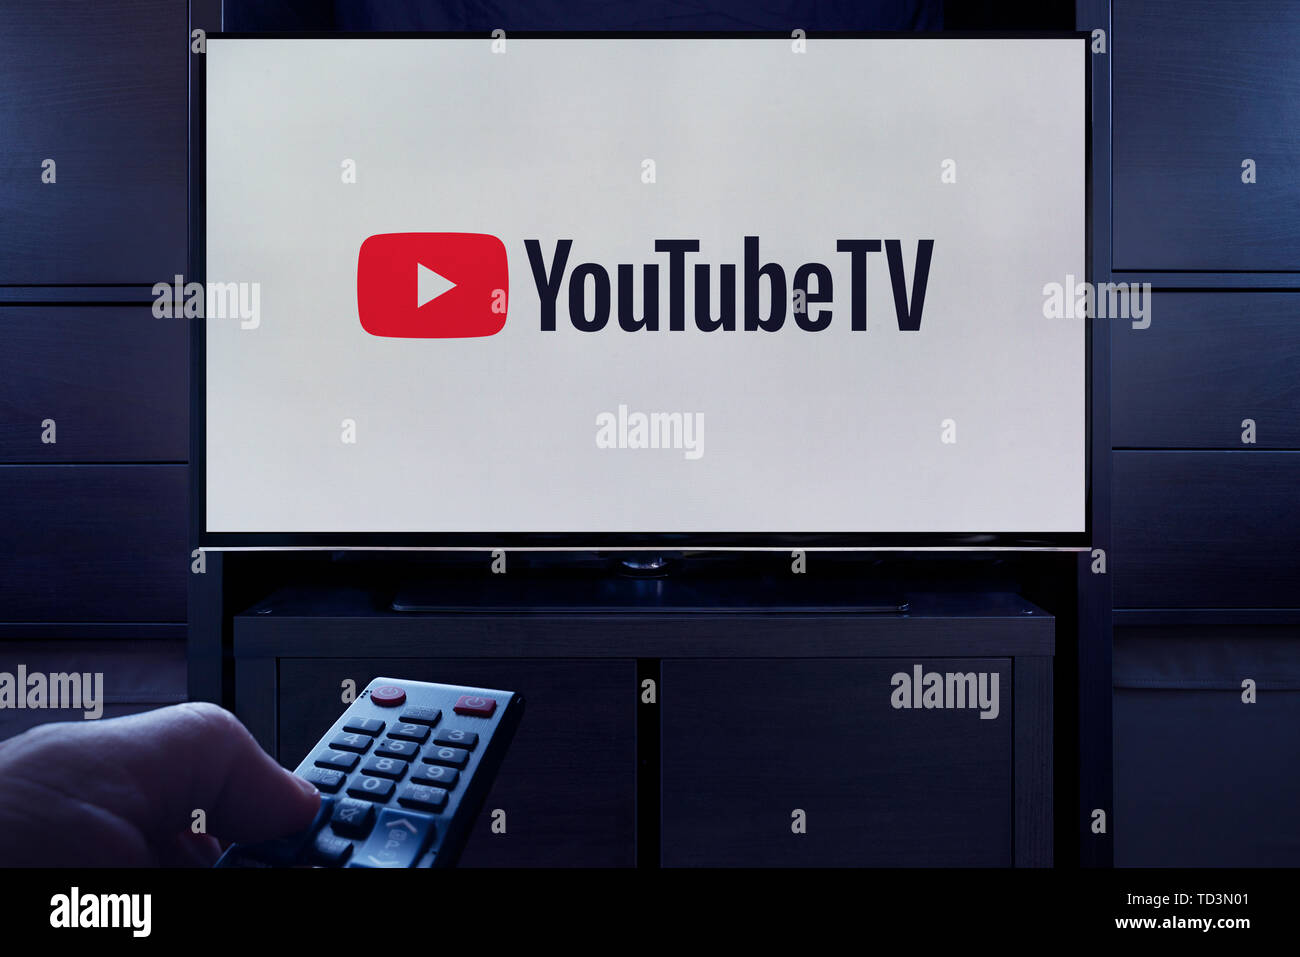 A man points a TV remote at the television which displays the logo for the YouTube TV on demand video streaming service (Editorial use only). - Stock Image